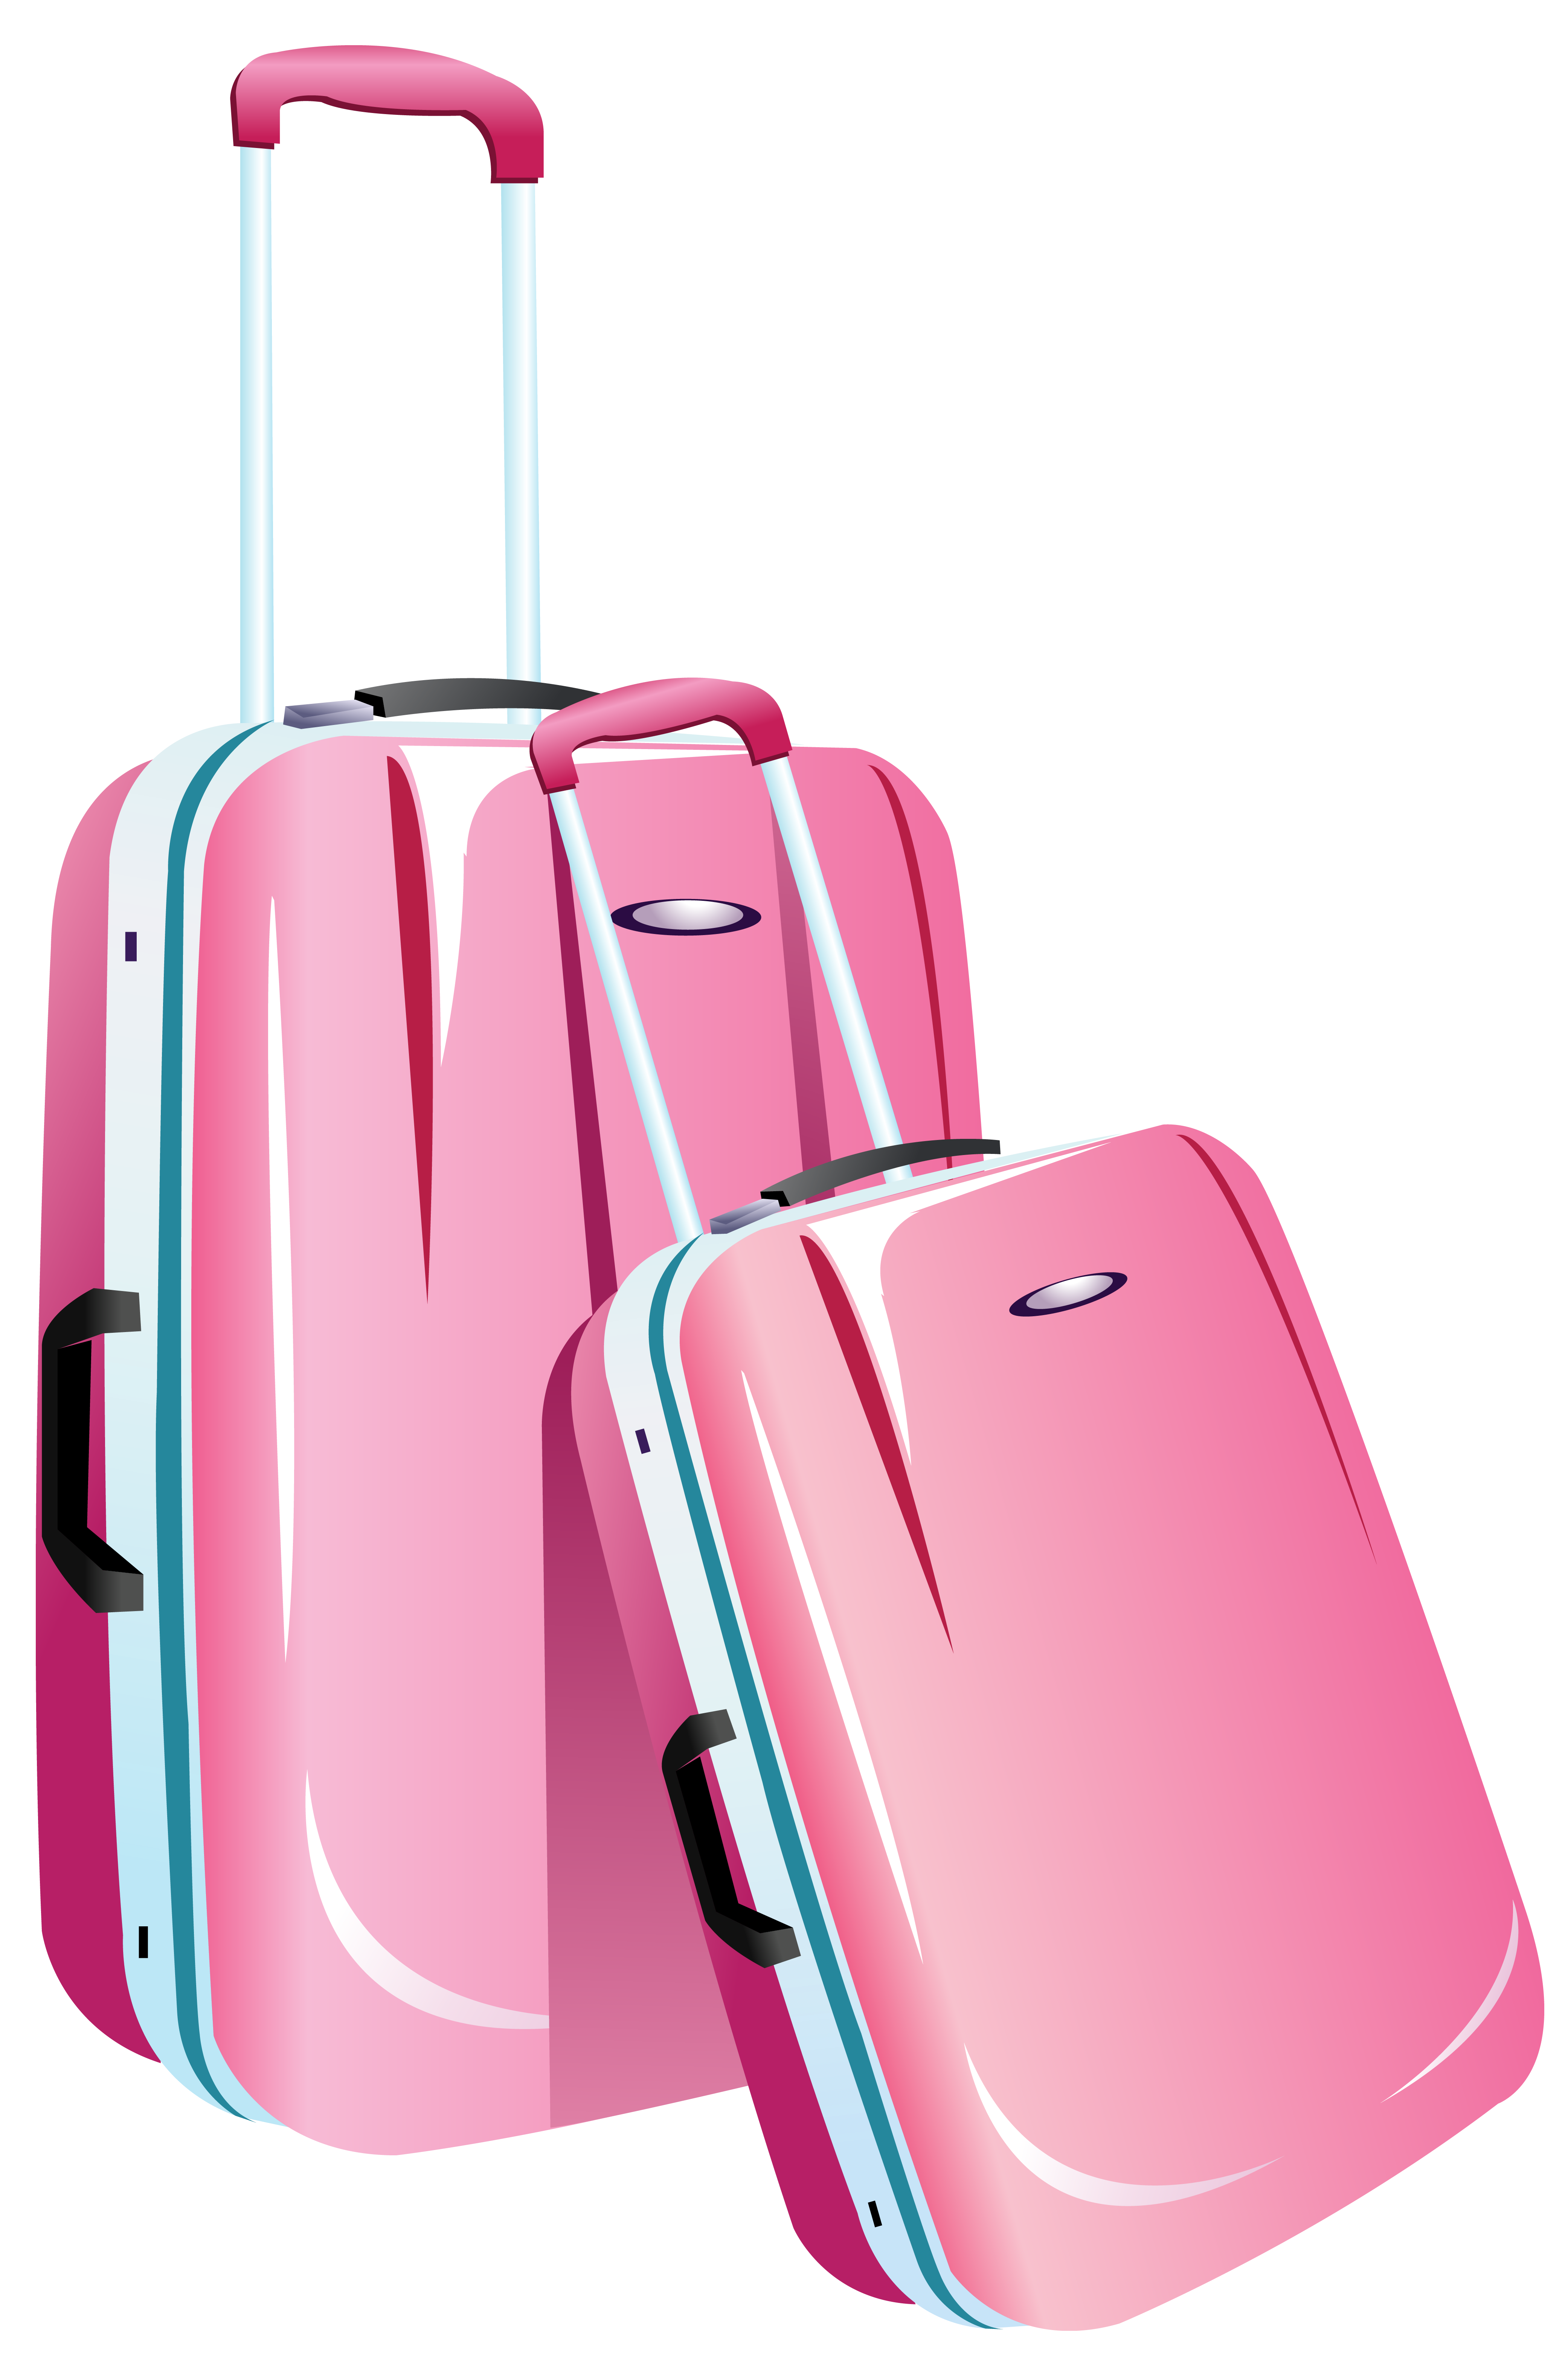 Luggage clipart lugagge. Pink travel bags png